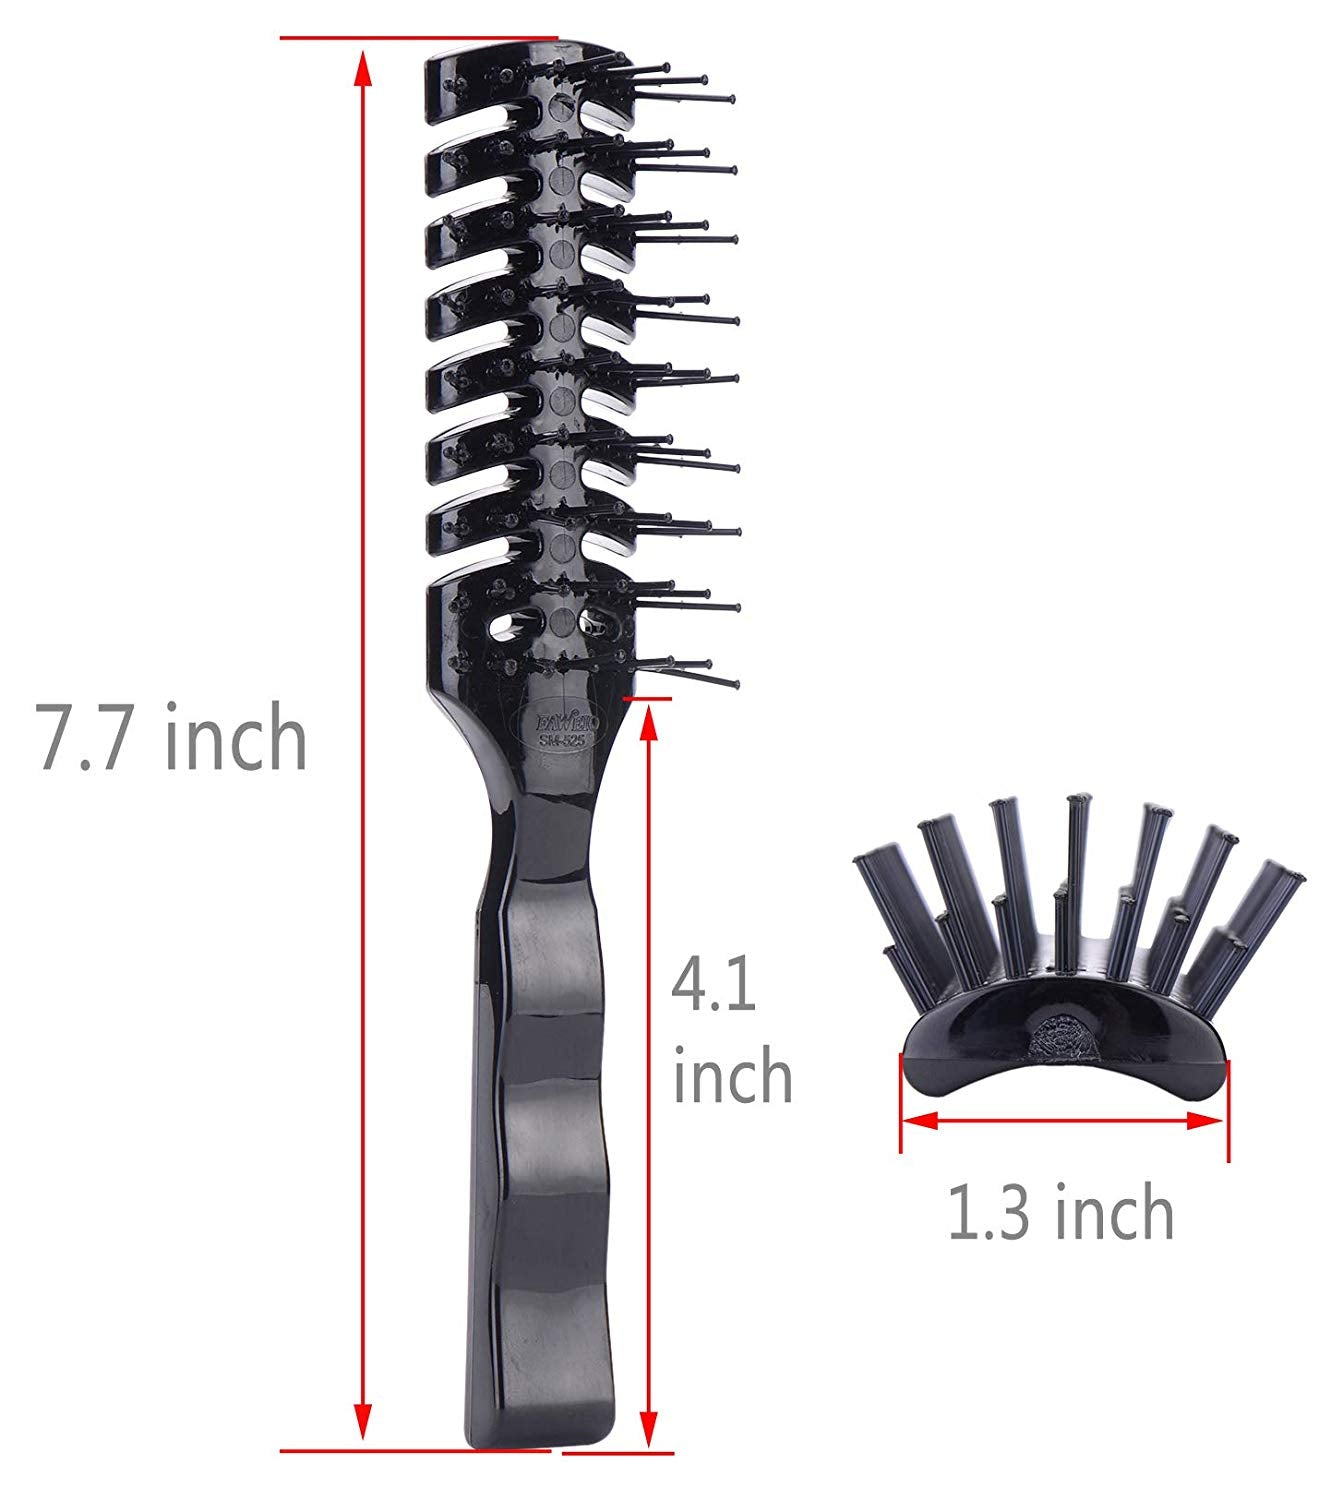 Anti Static Vent Hairbrush for Styling Fine